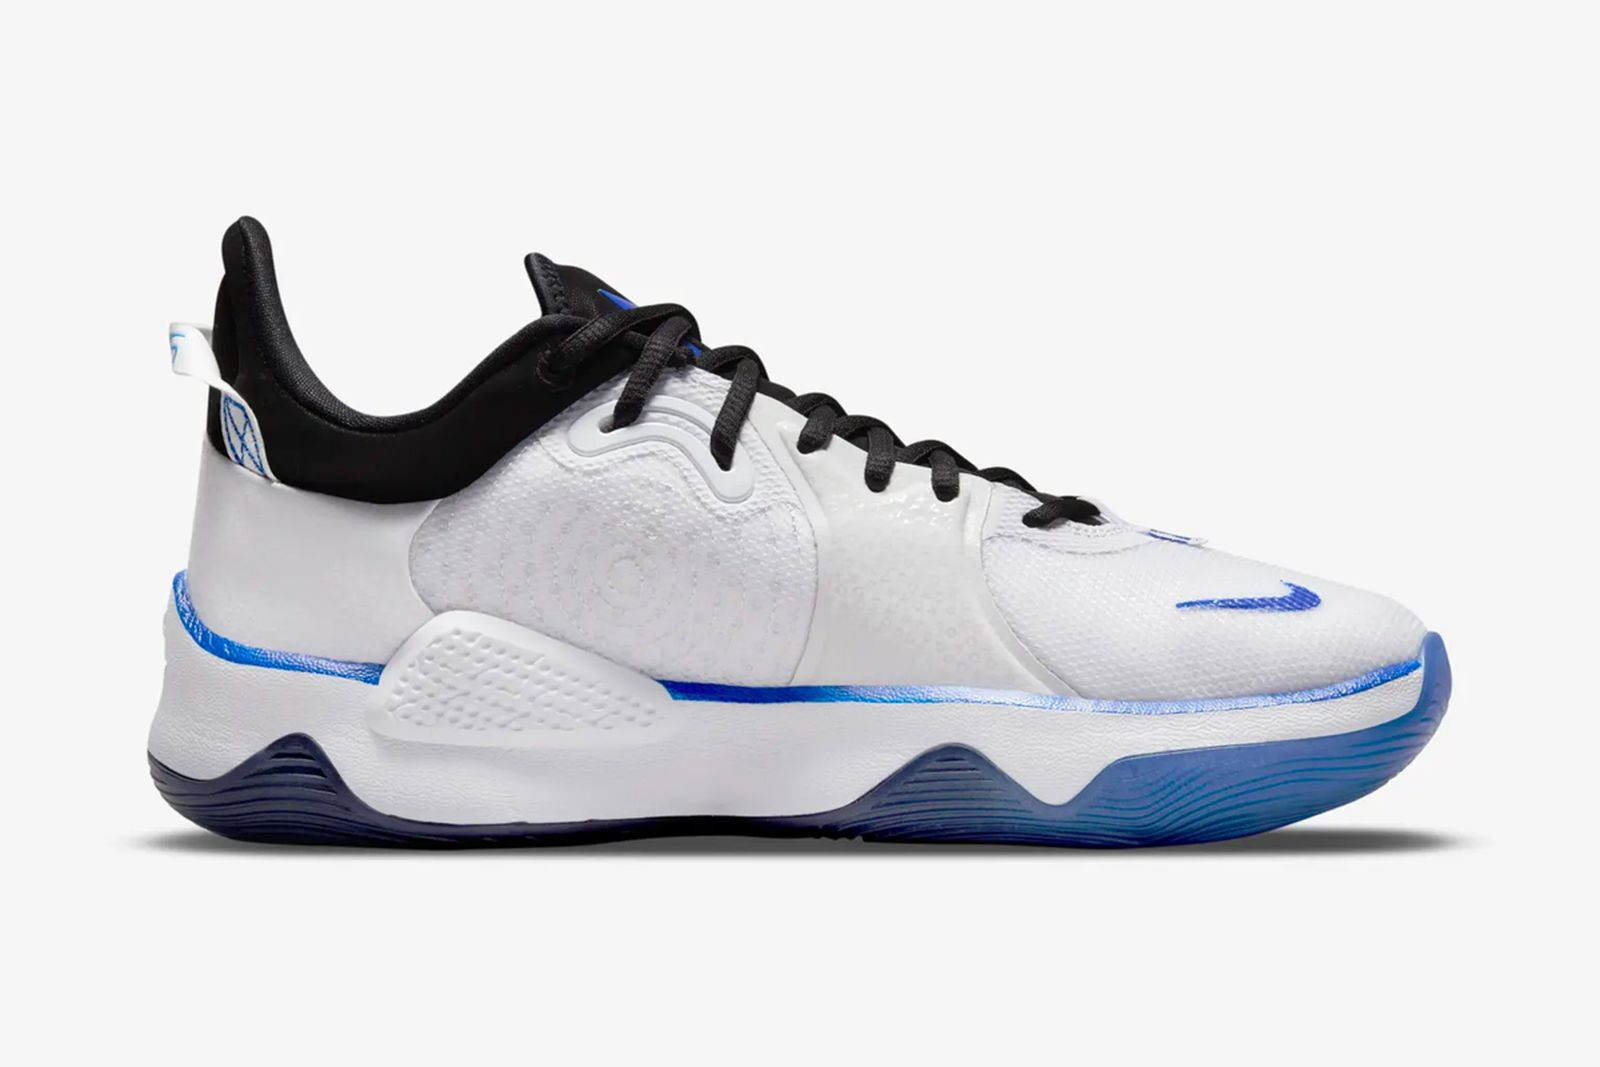 nike-pg-5-playstation-5-release-date-price-01